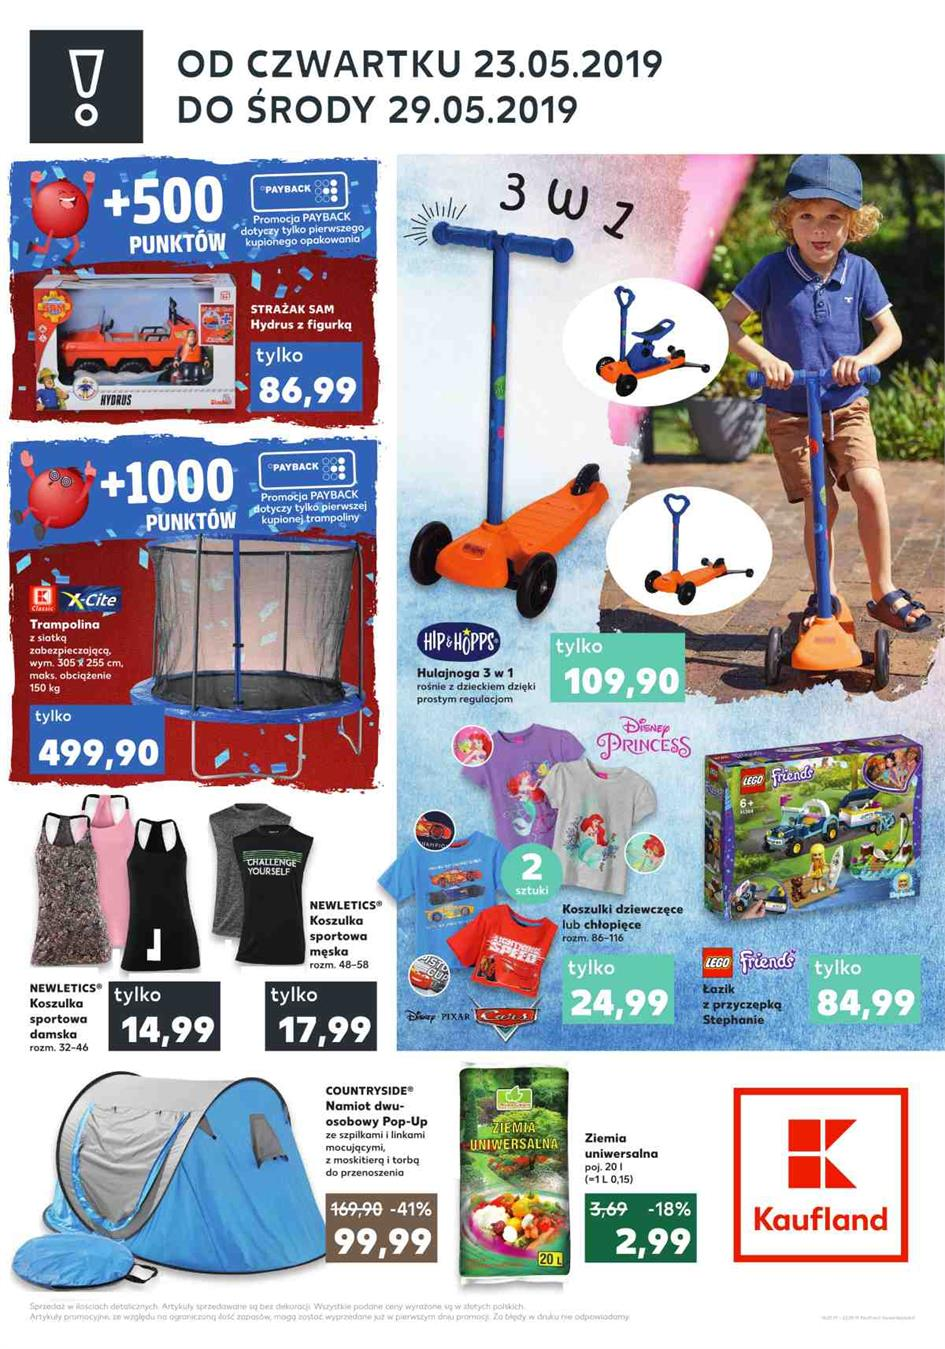 Gazetka Kaufland Polska Markety Sp. z o.o nr 2 od 2019-05-23 do 2019-05-29